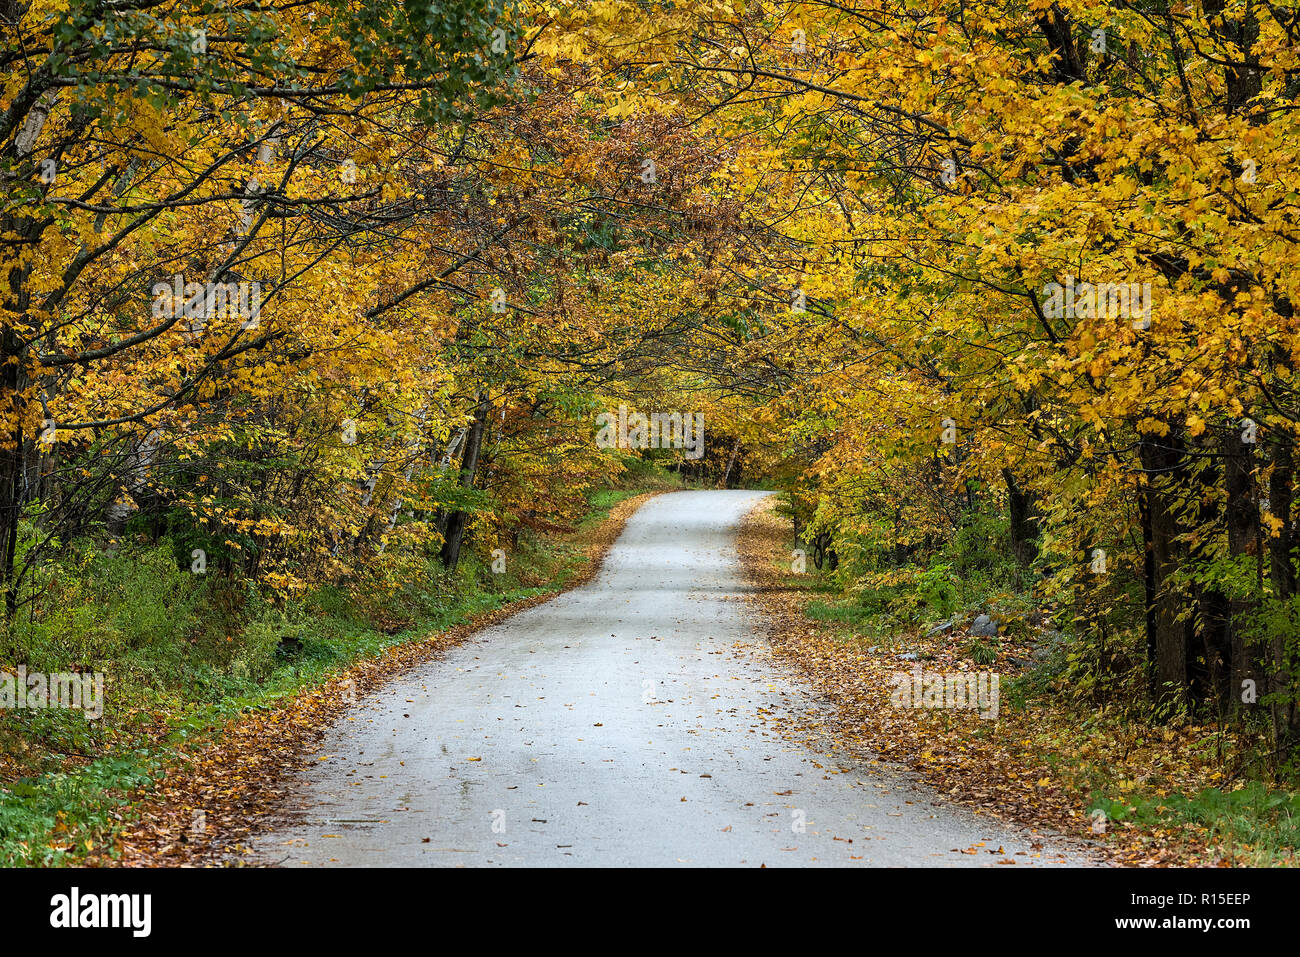 Unpaved country road with autumn foliage, Cuttingsville, Vermont, USA. - Stock Image